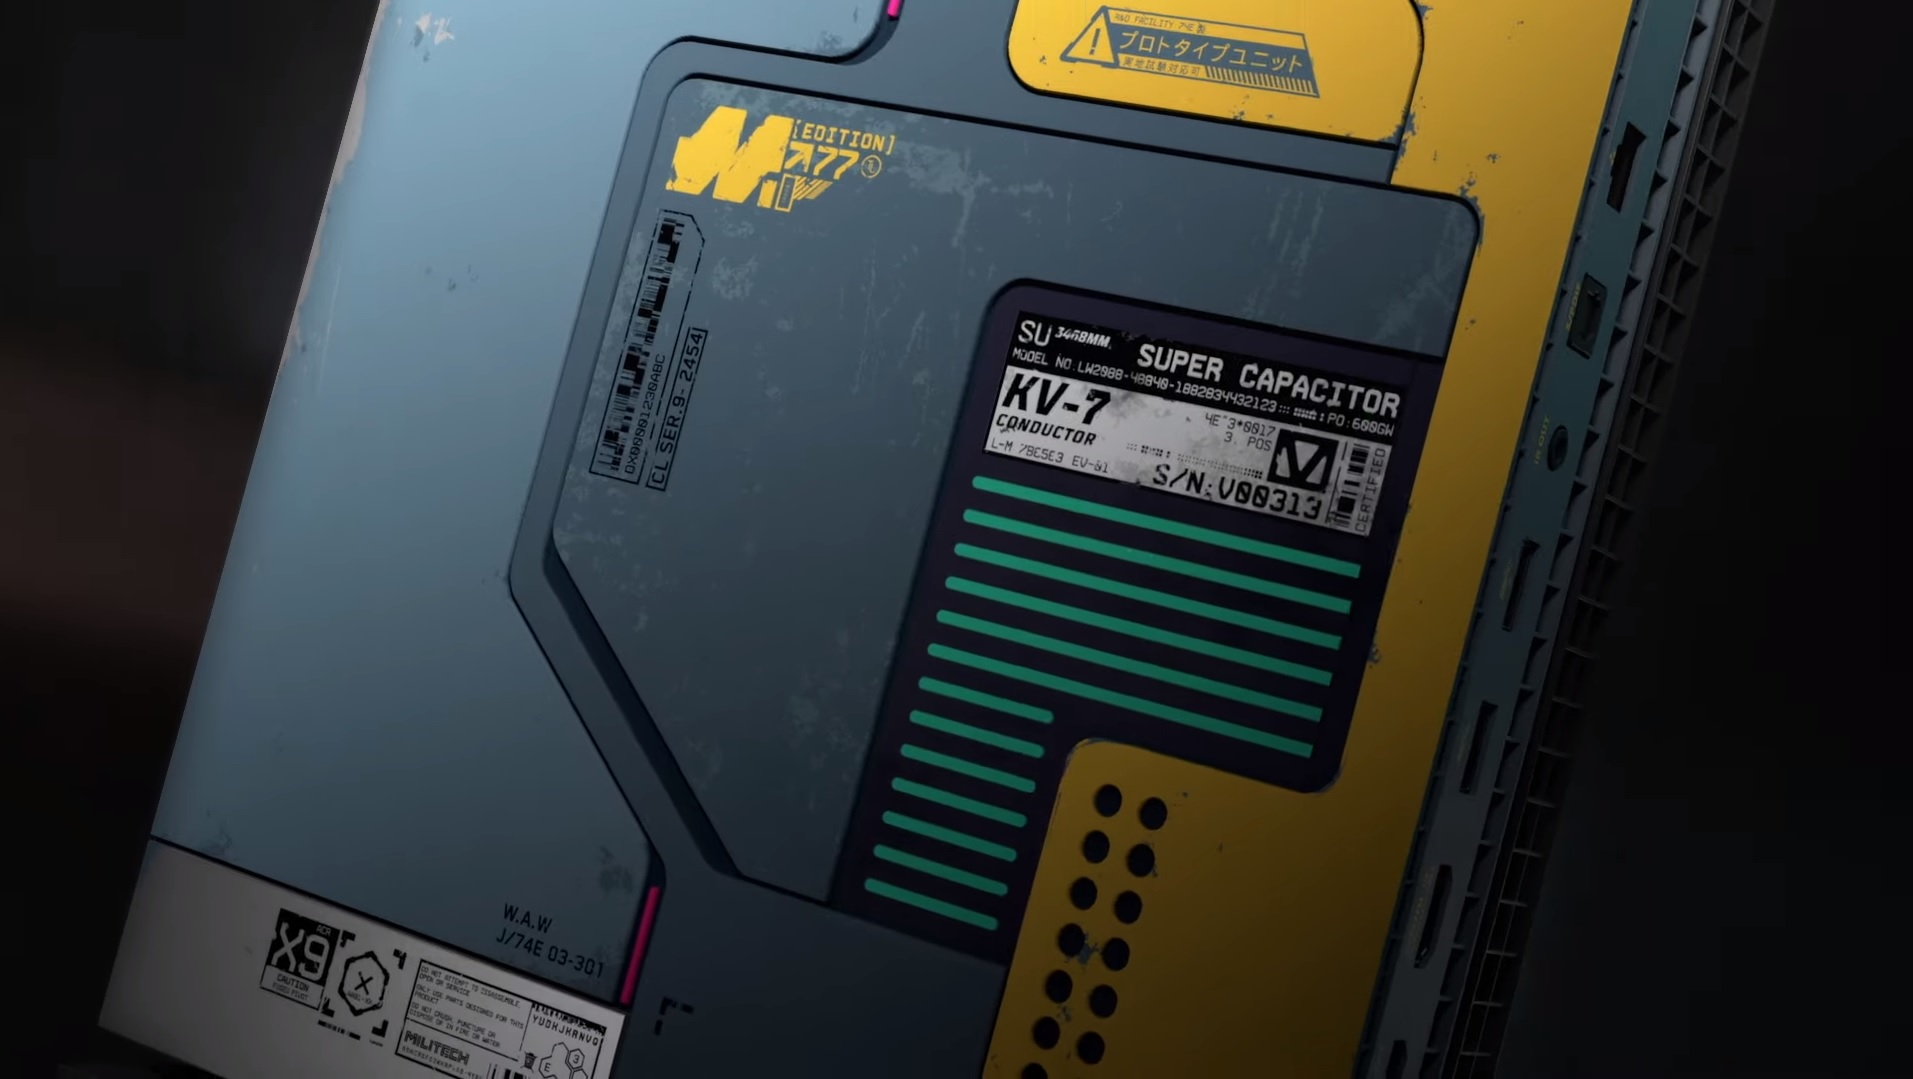 Cyberpunk 2077 ARG sleuths confirmed the limited edition Xbox One X three days early screenshot